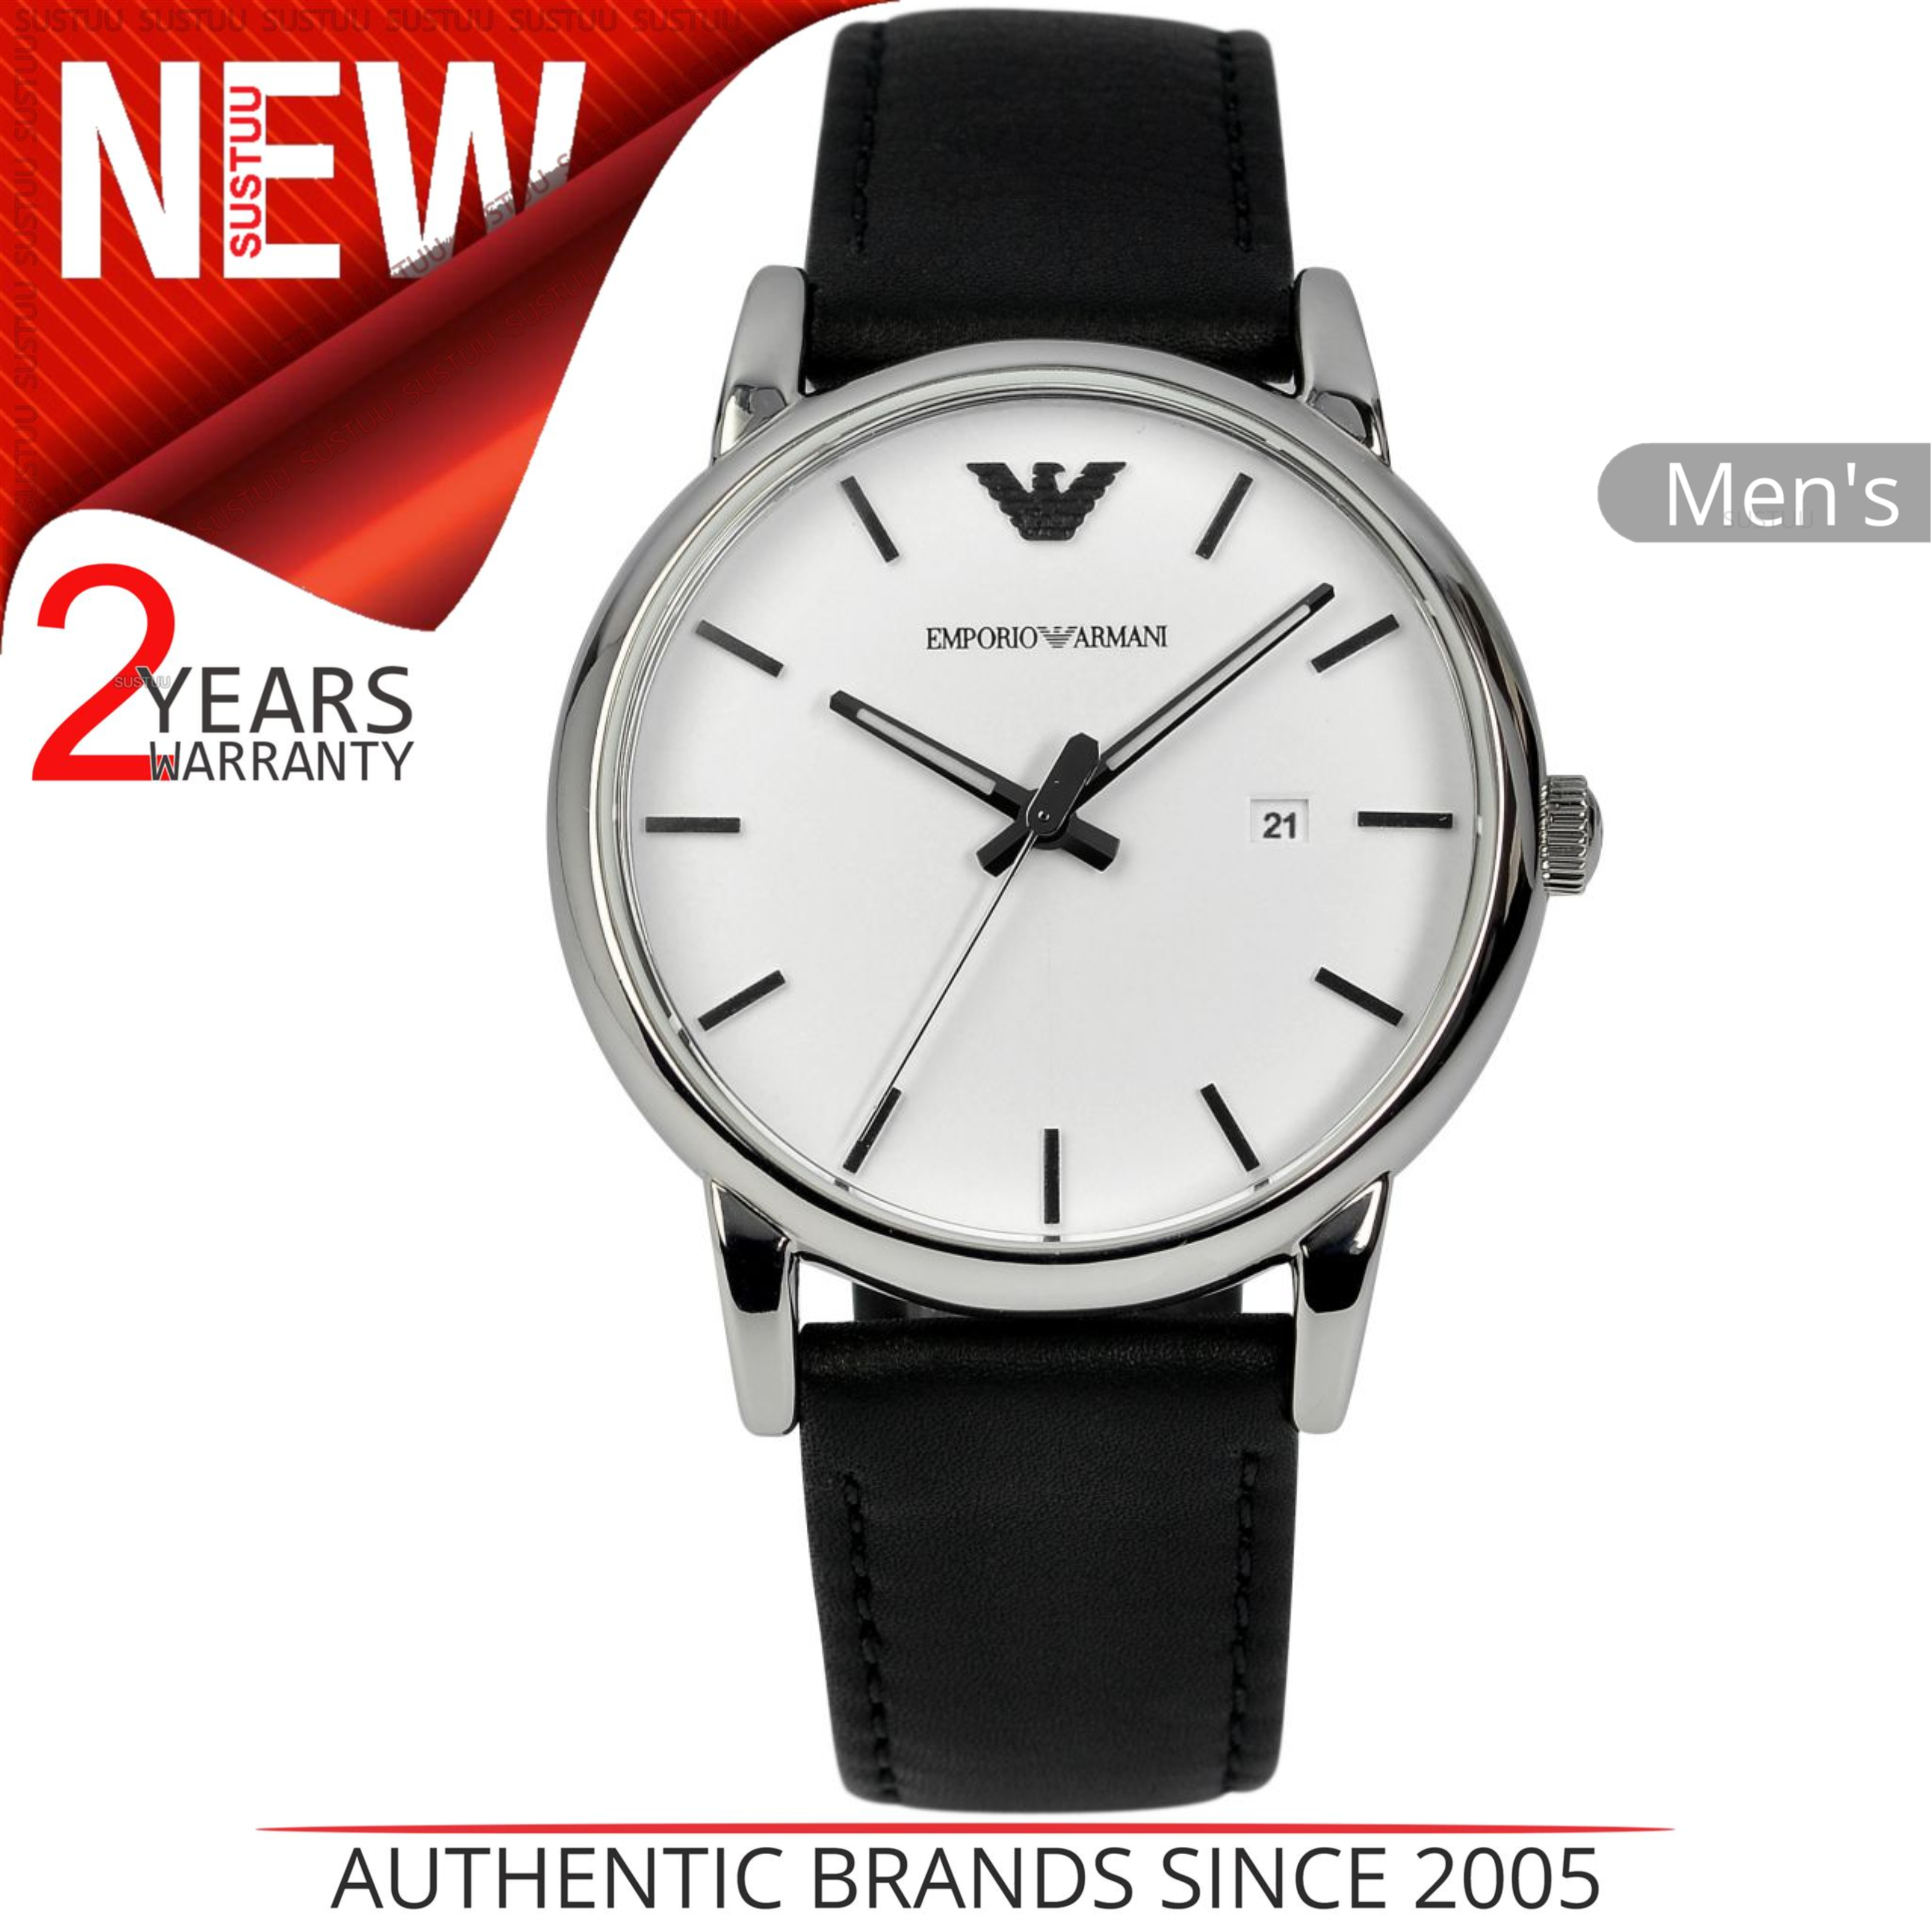 beb7b683c Details about Emporio Armani Classic Men's Watch AR1694│White Round Dial│Black  Leather Strap